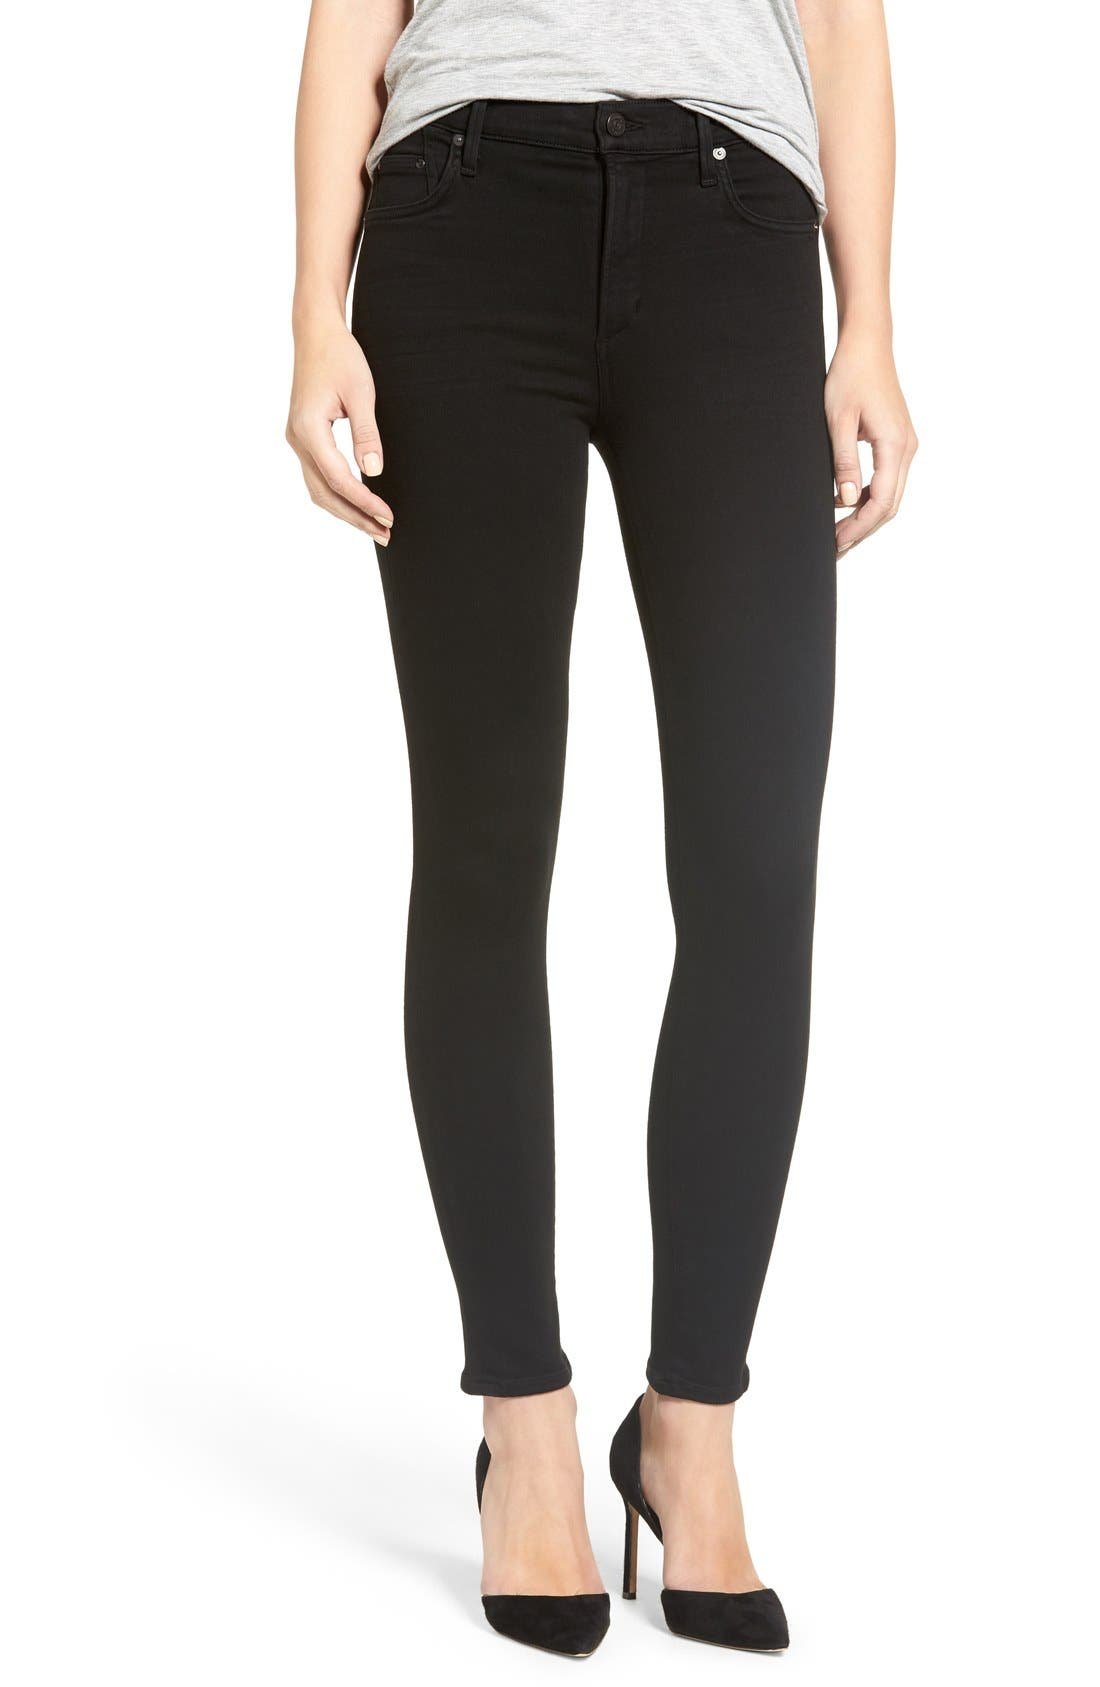 'Rocket' Skinny Jeans,                             Alternate thumbnail 8, color,                             ALL BLACK